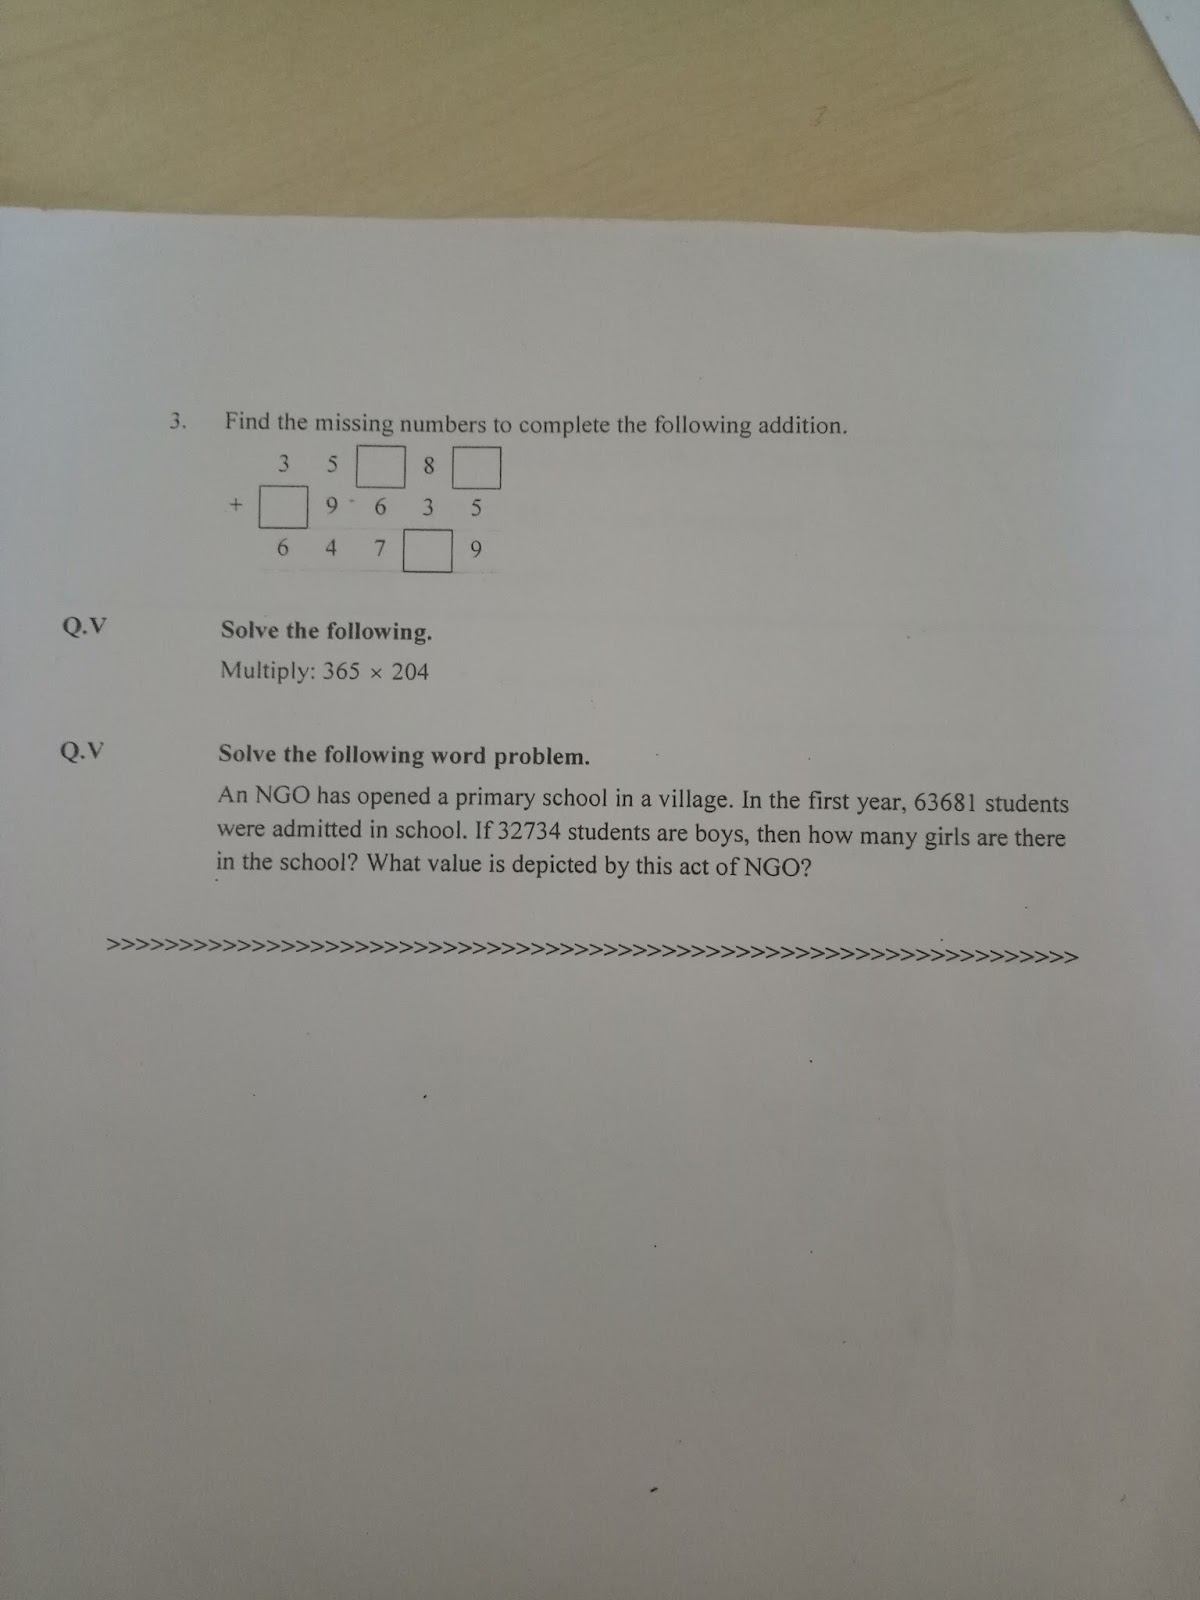 Pis Vadodara Std 4 Grade 4 Math Revision Worksheet